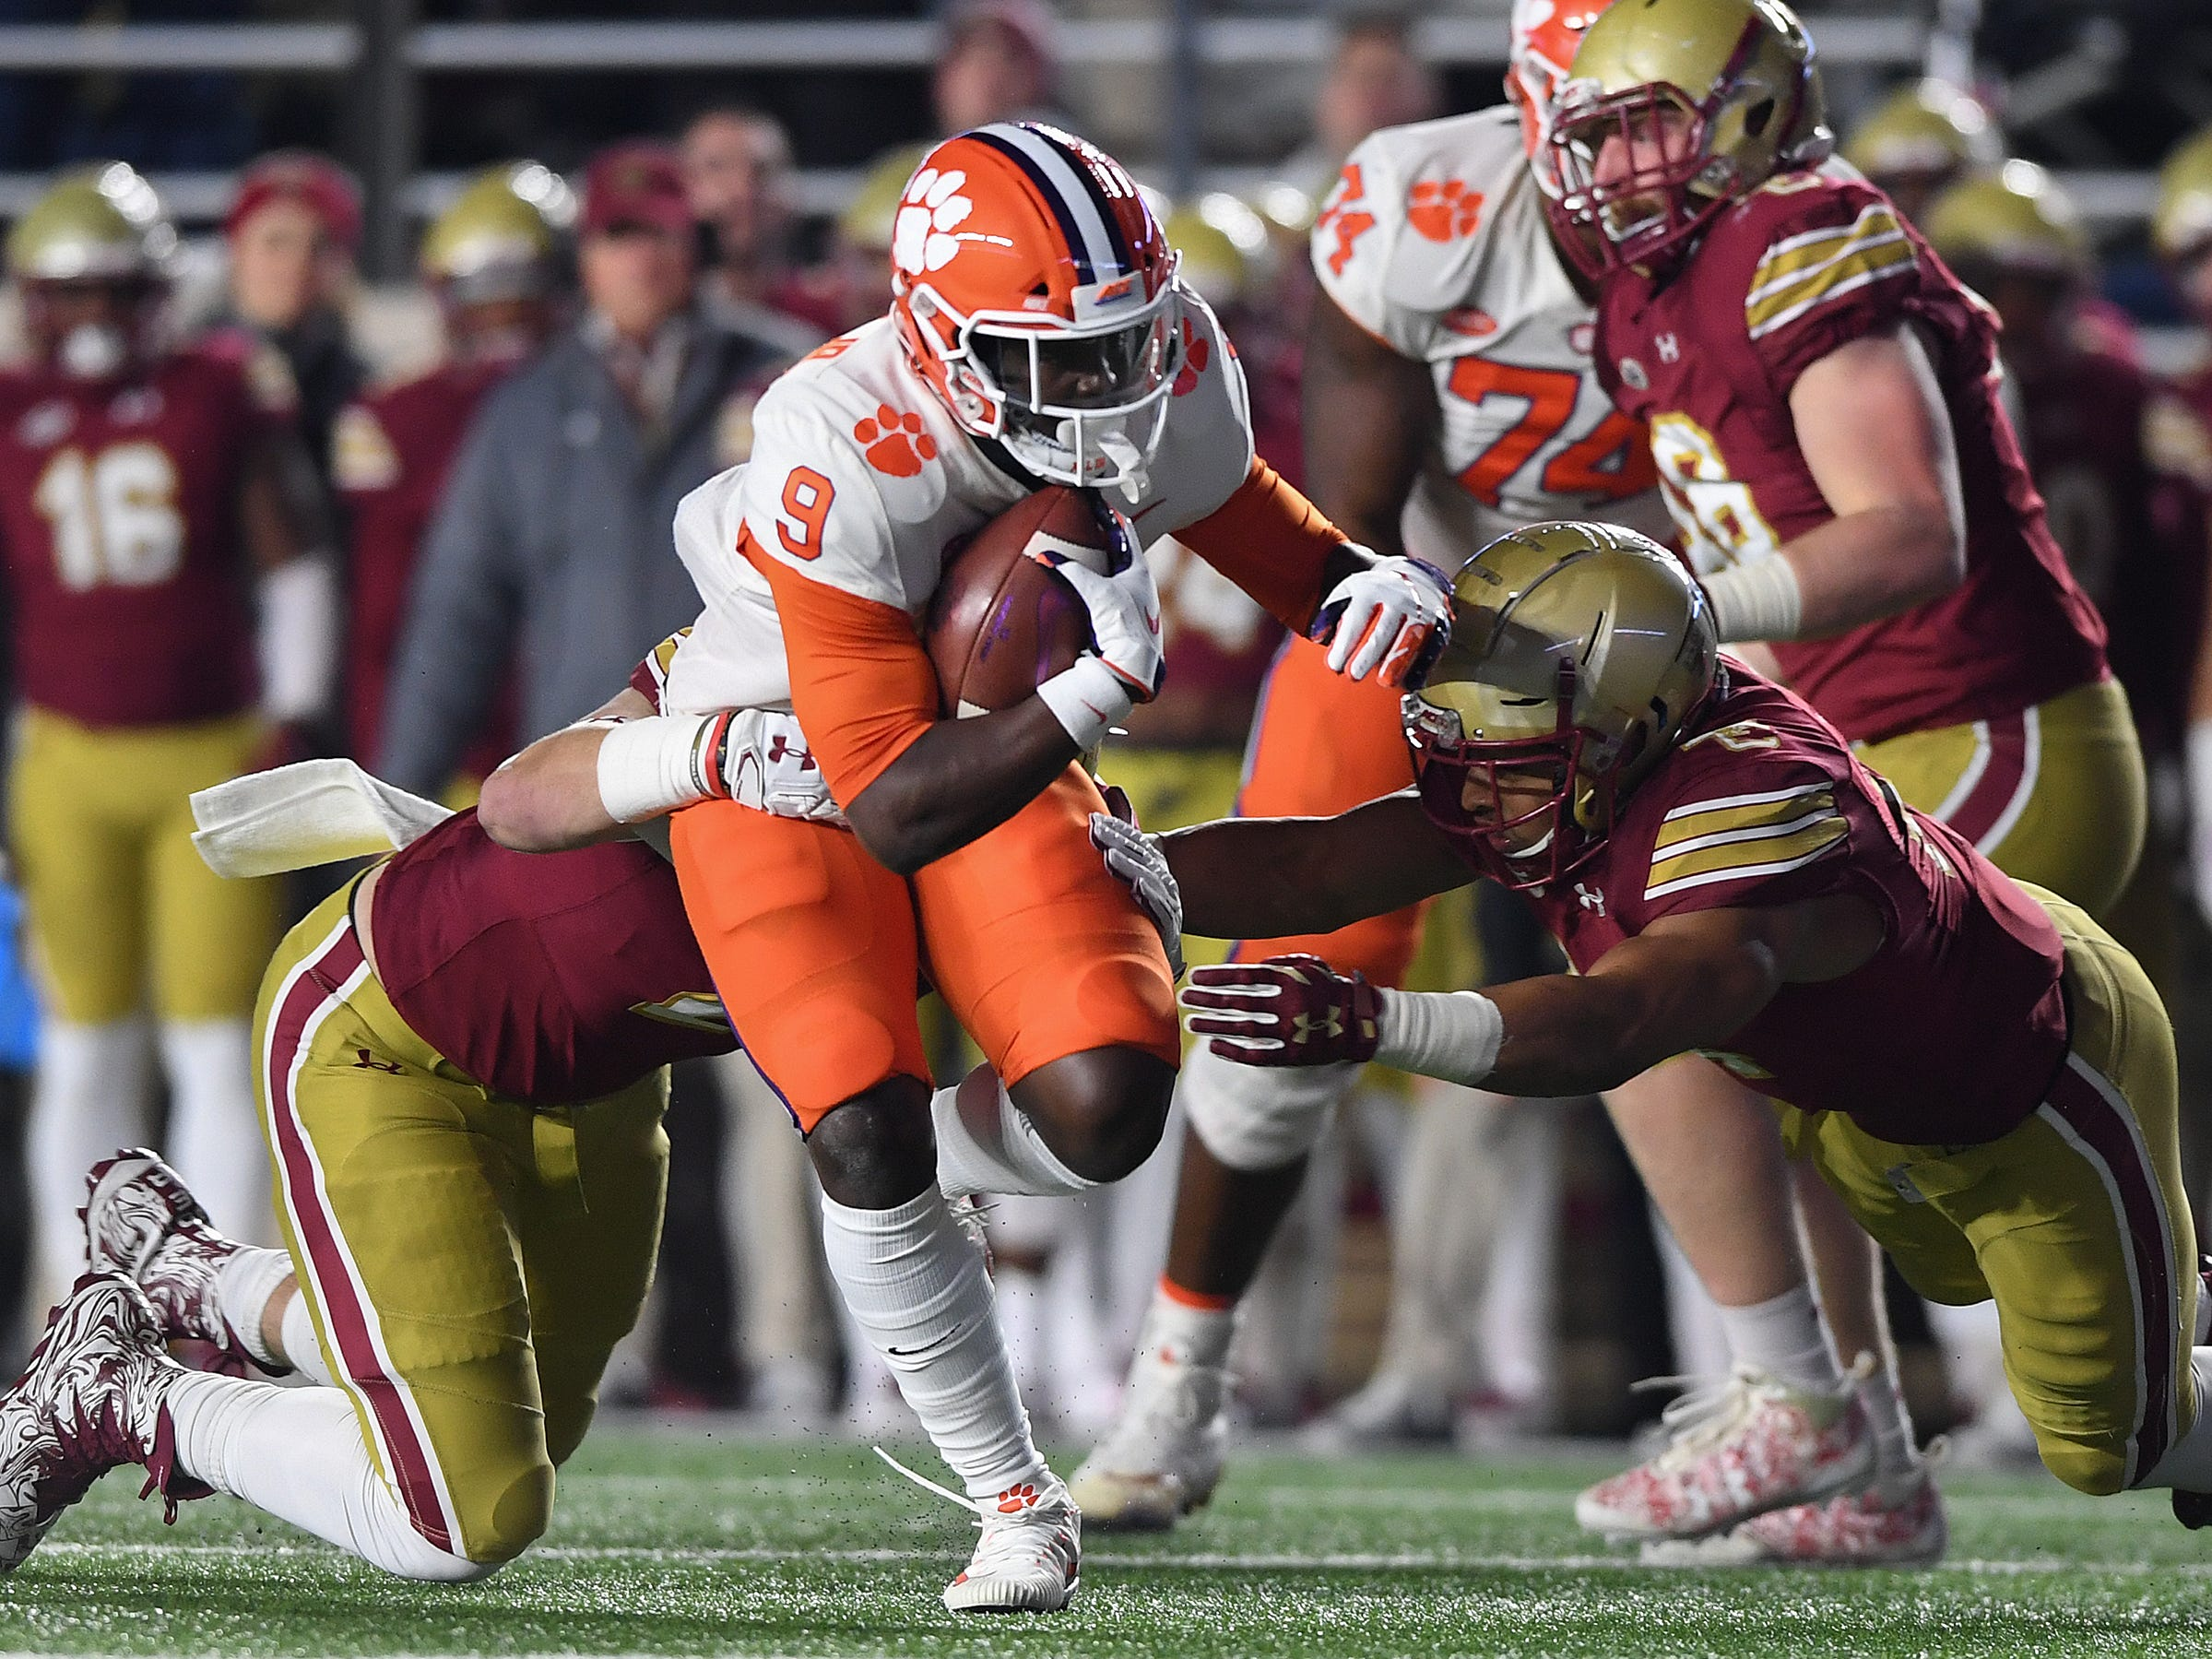 Clemson running back Travis Etienne (9) carries against Boston College during the 1st quarter at Boston College's Alumni Stadium in Chestnut Hill, MA. Saturday, November 10, 2018.